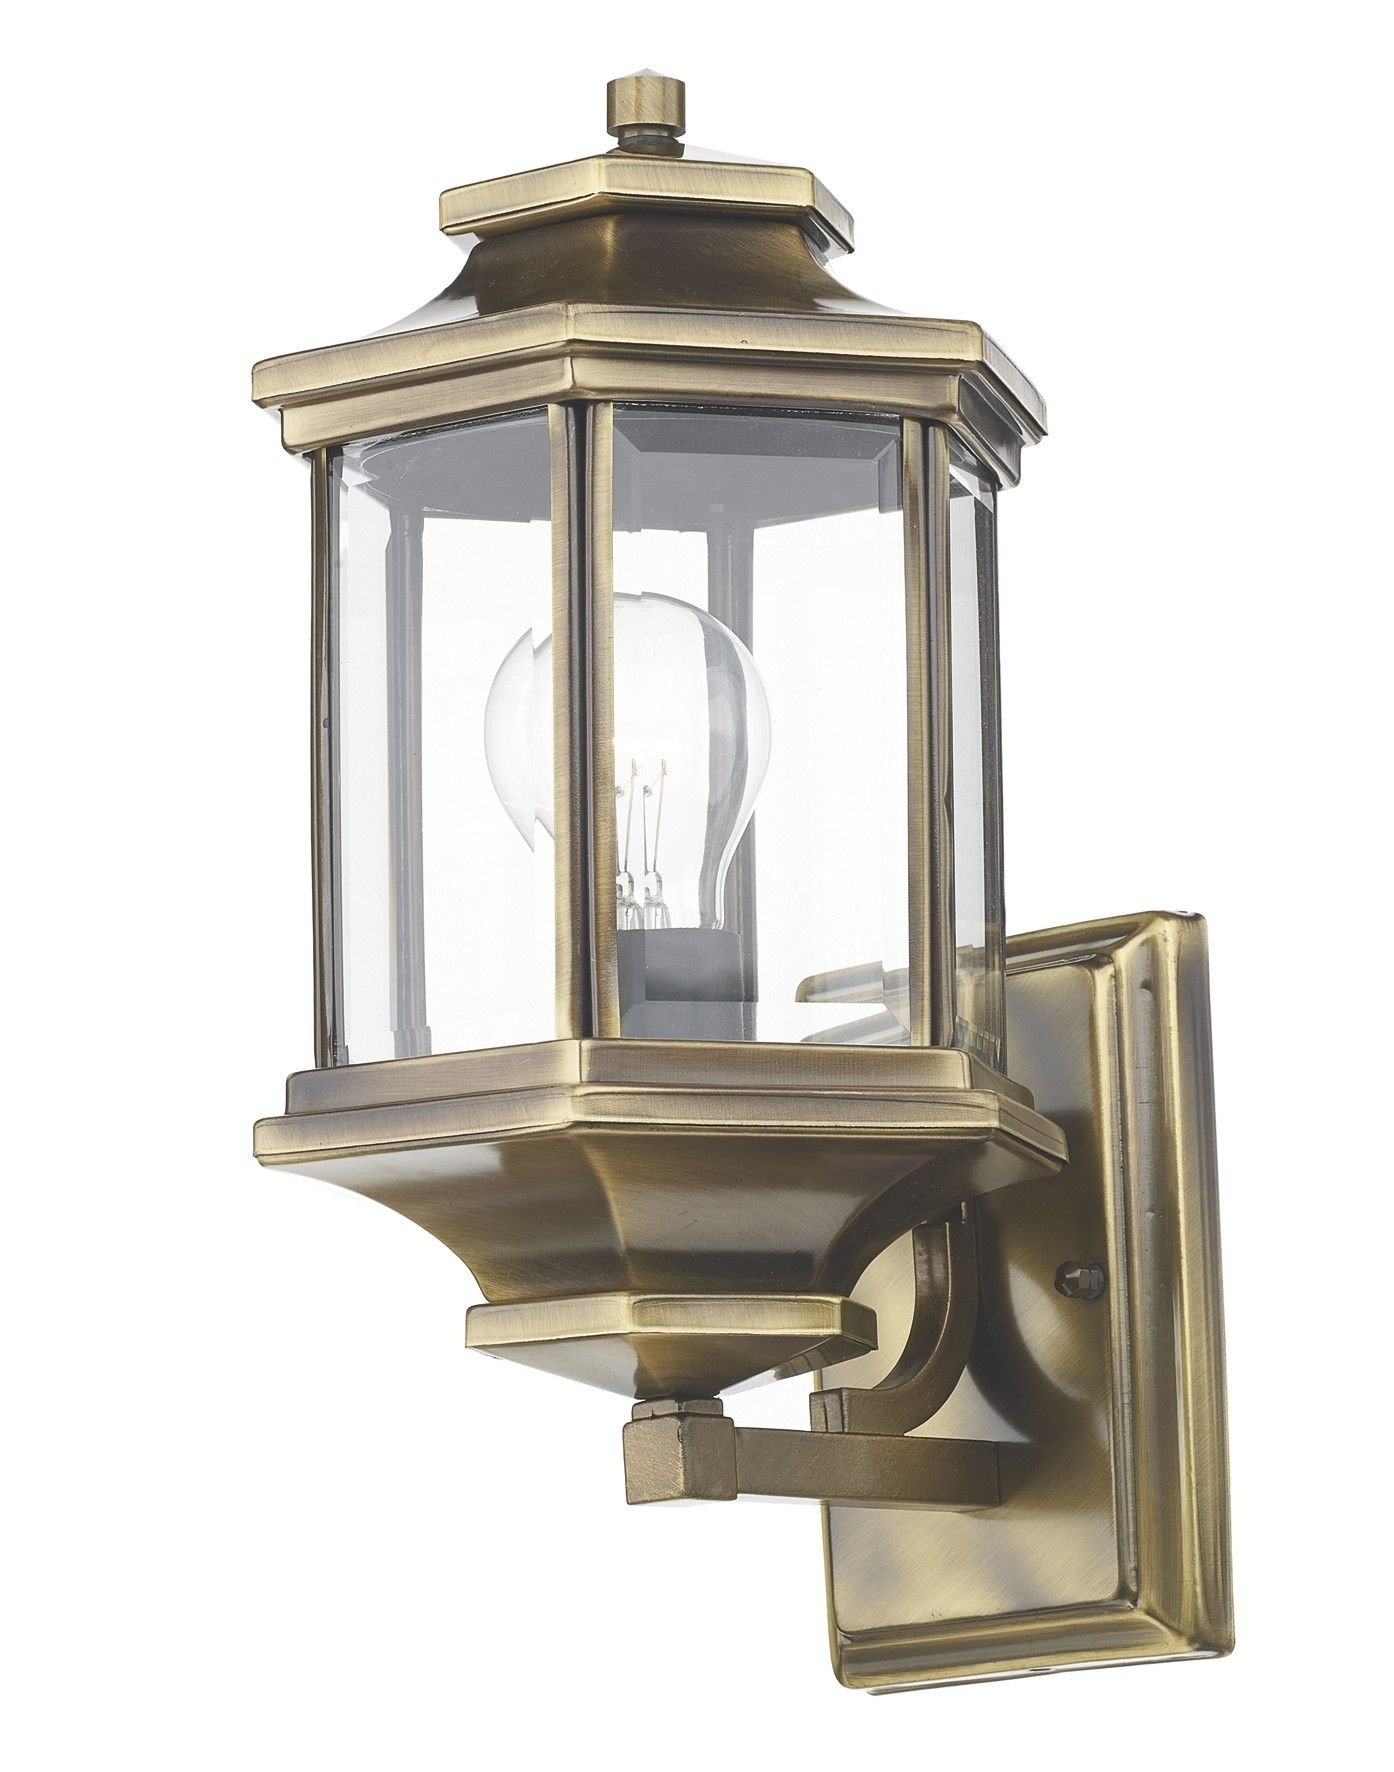 Ladbroke Lantern Antique Brass Complete With Bevelled Glass | Dar pertaining to Vaughan Outdoor Lanterns (Image 10 of 20)